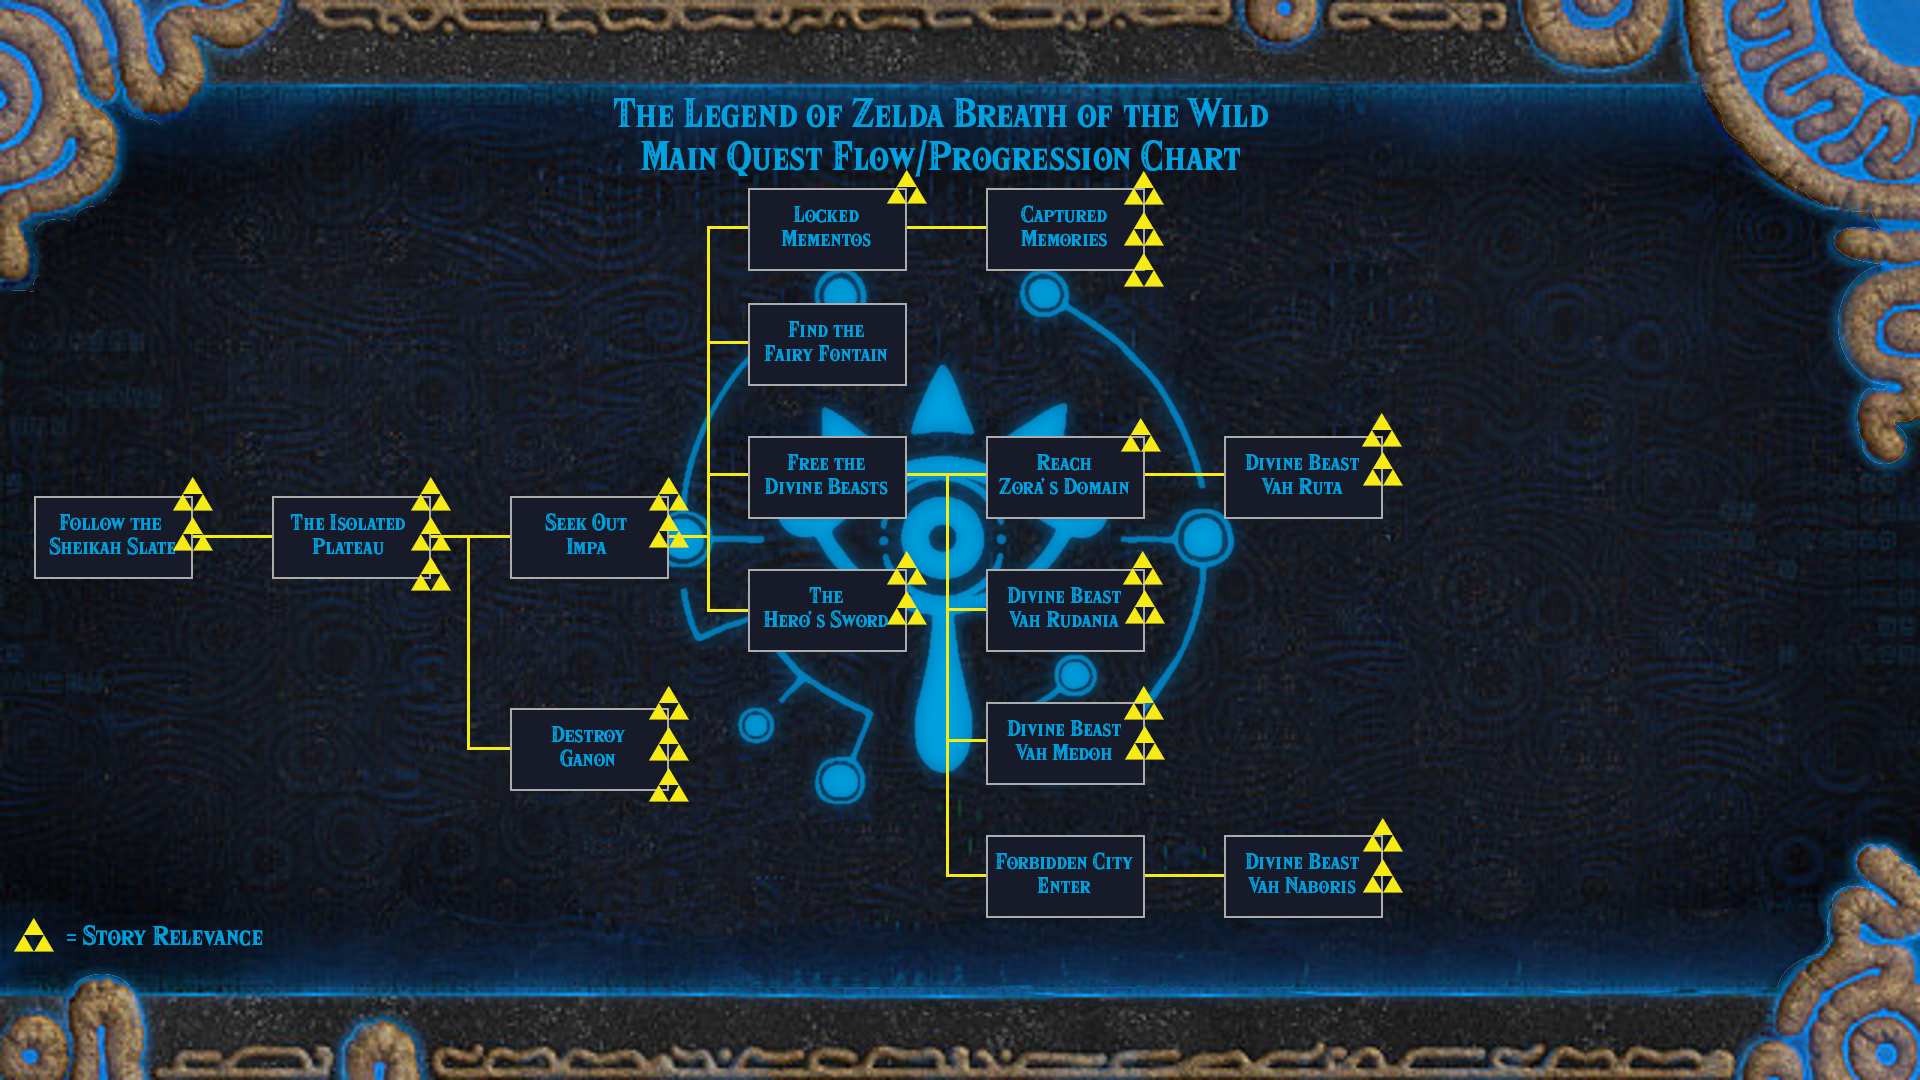 Flowchart of the Main Quests Progression in Breath of the Wild